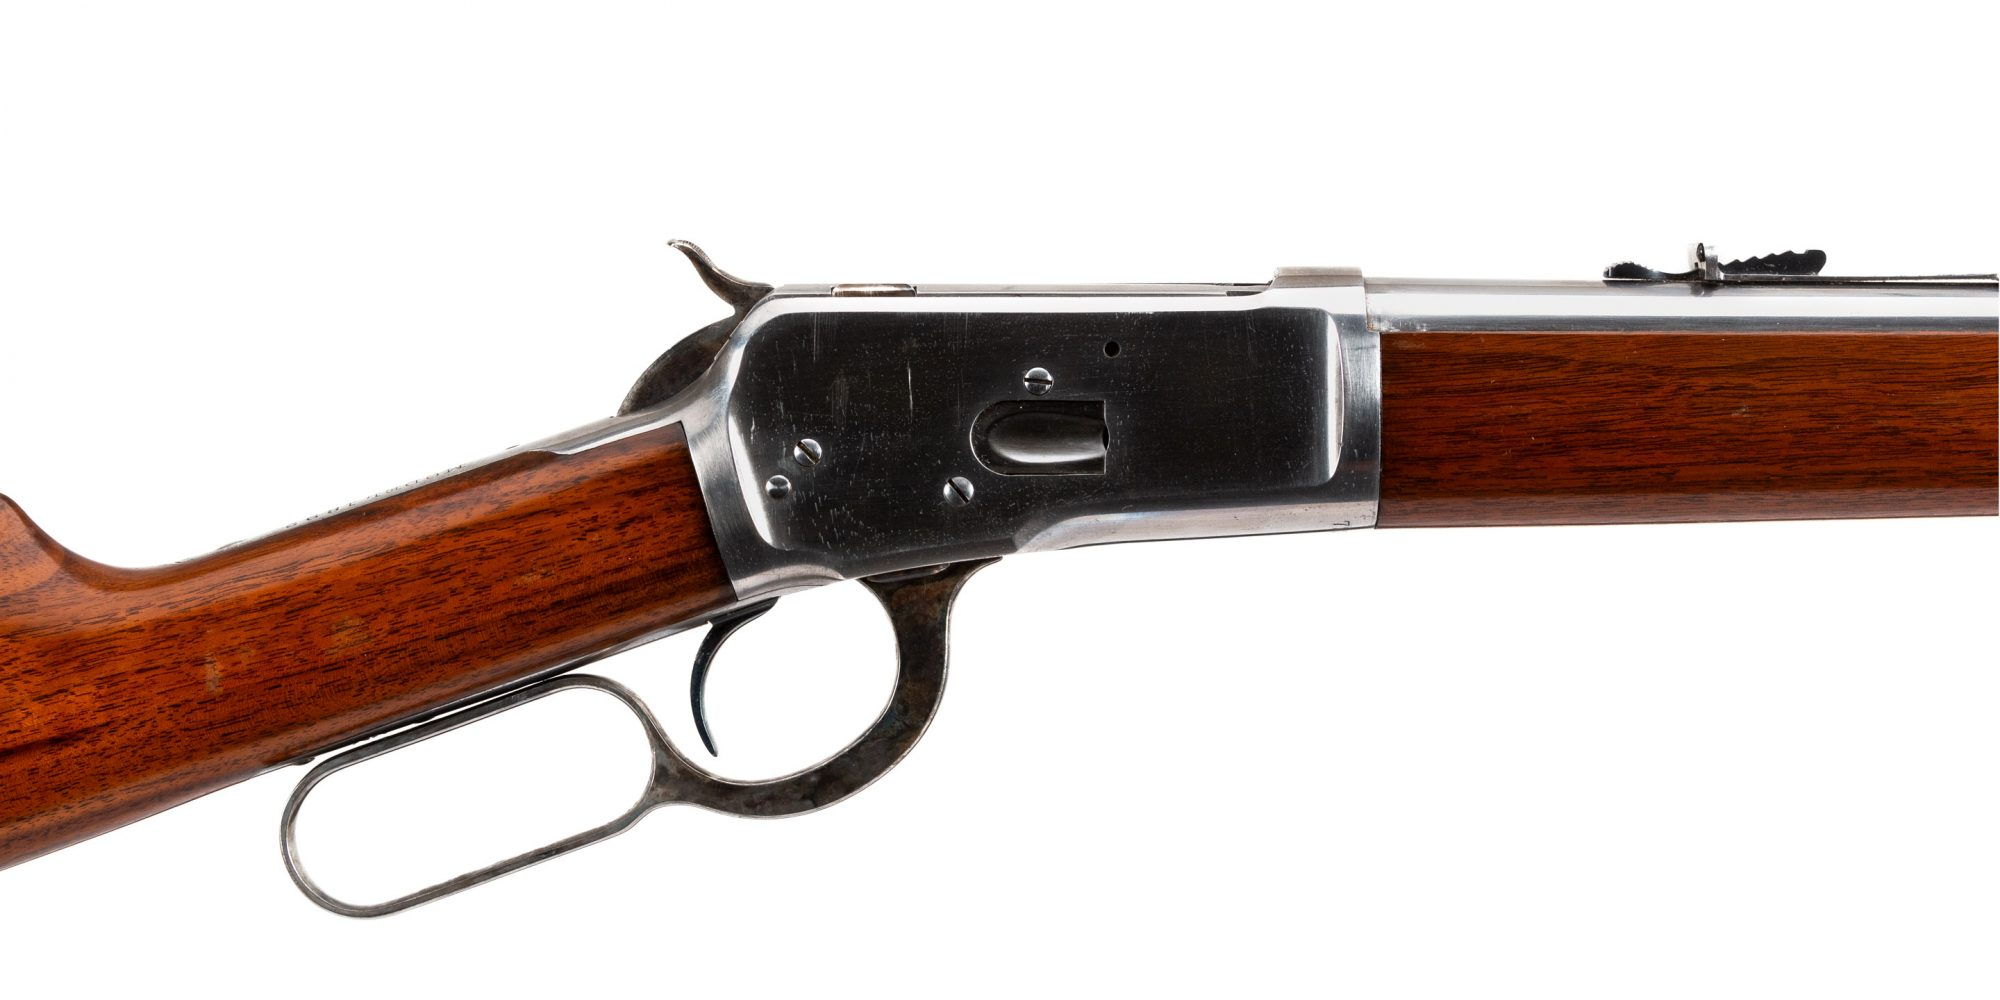 Photo of an original Winchester Model 1892, sold by Turnbull Restoration in Bloomfield, NY